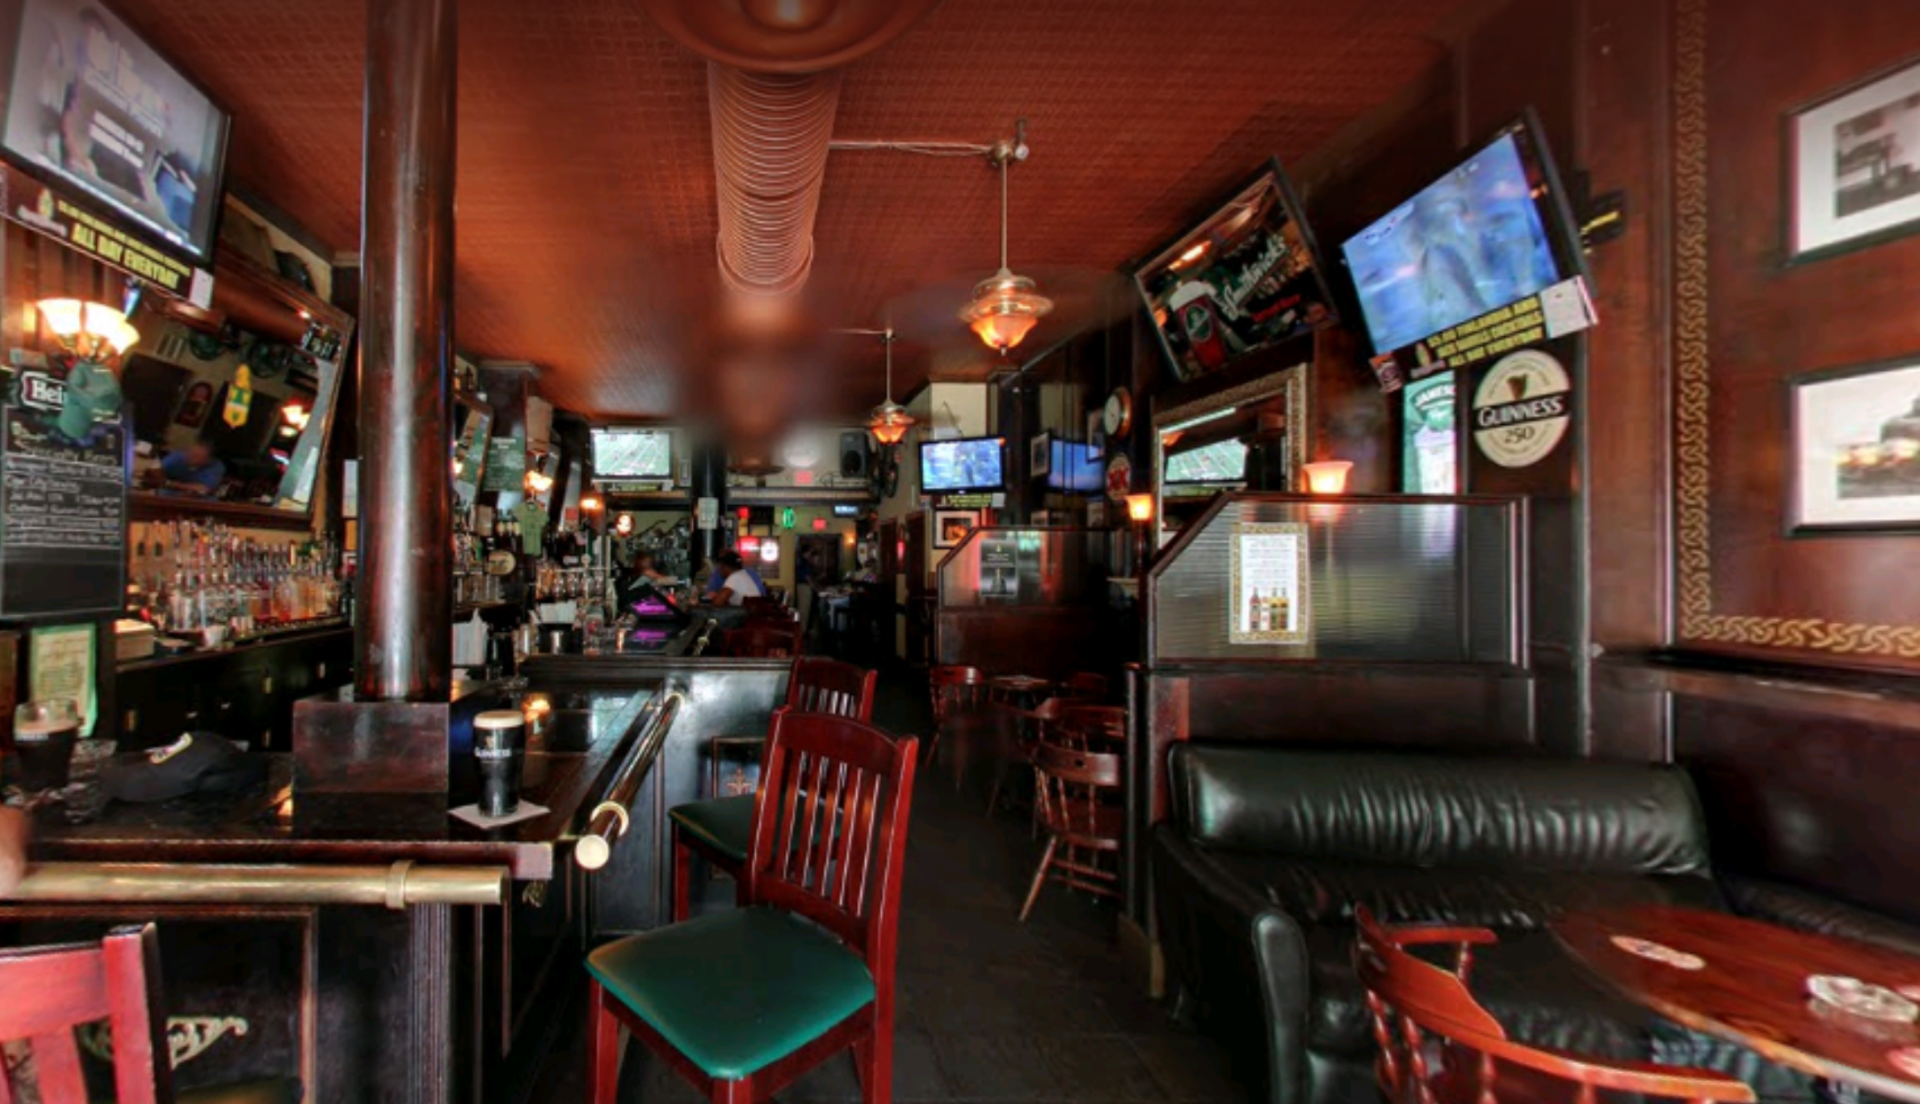 Lizzy McCormack's Irish Bar in America